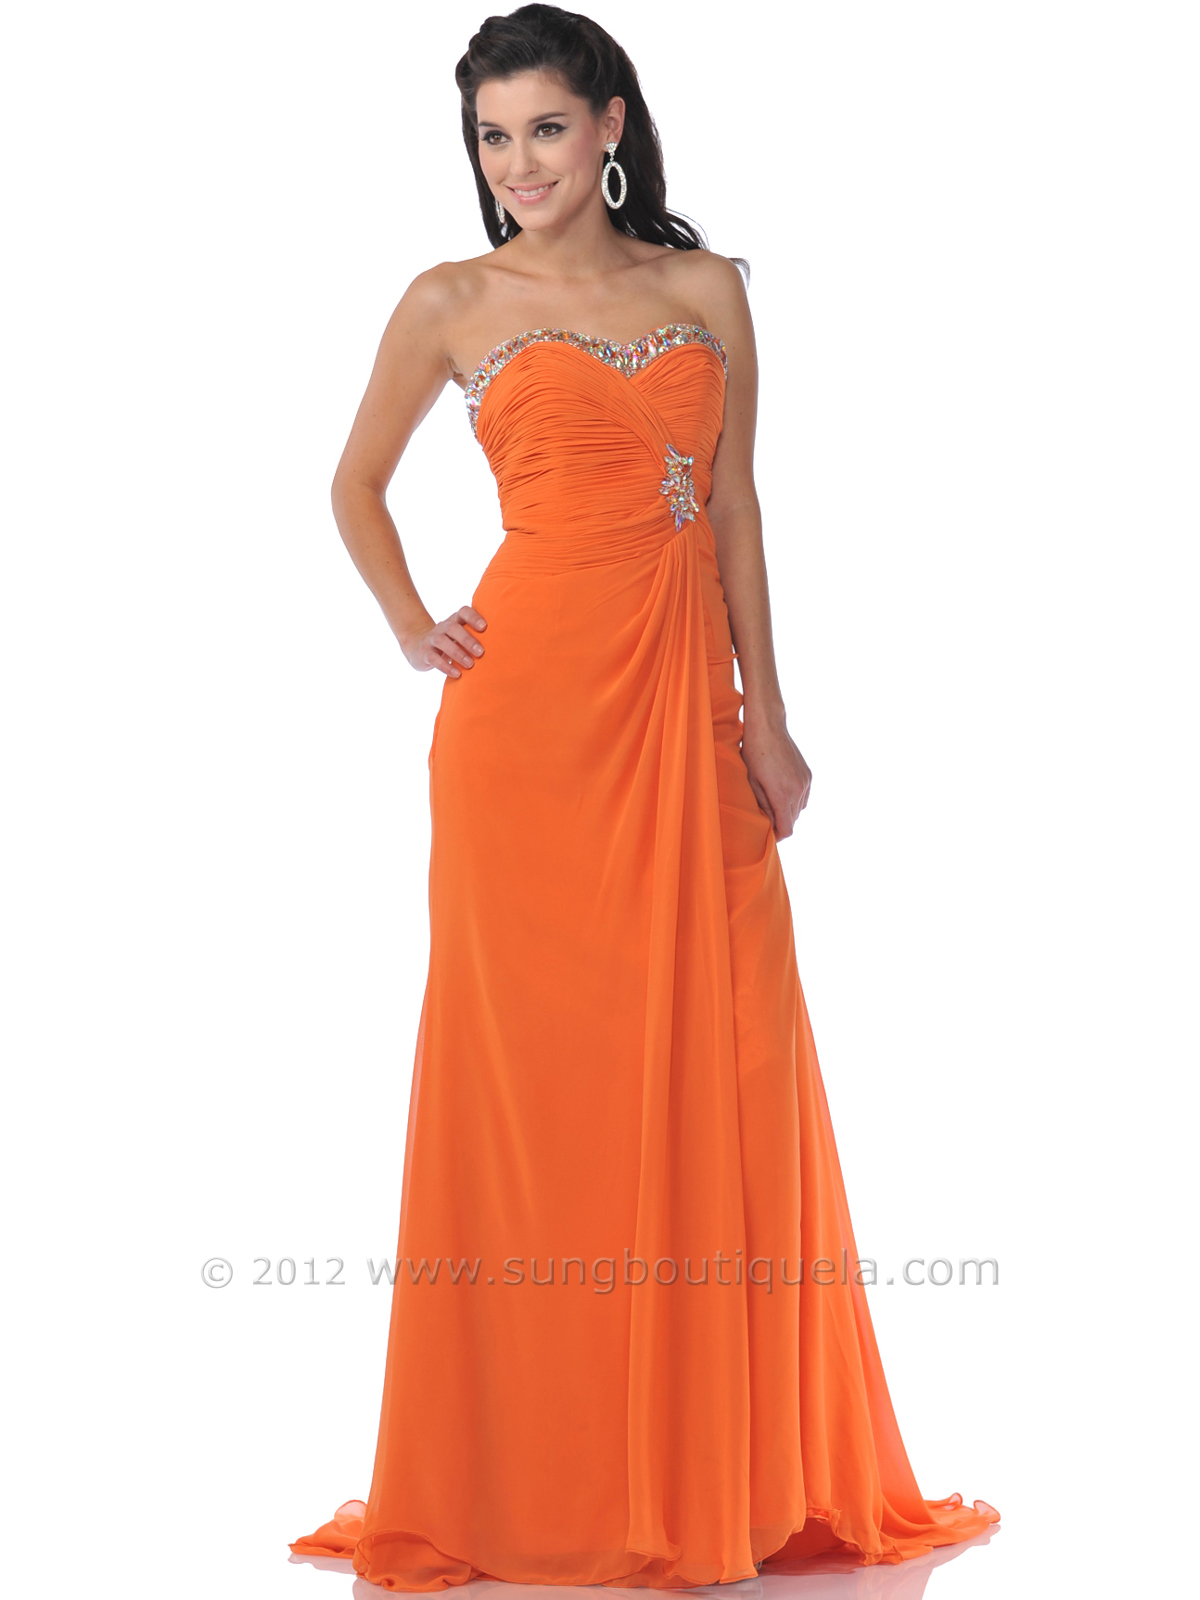 Orange Strapless Prom Dress with Sparkling Sweetheart Neckline ...